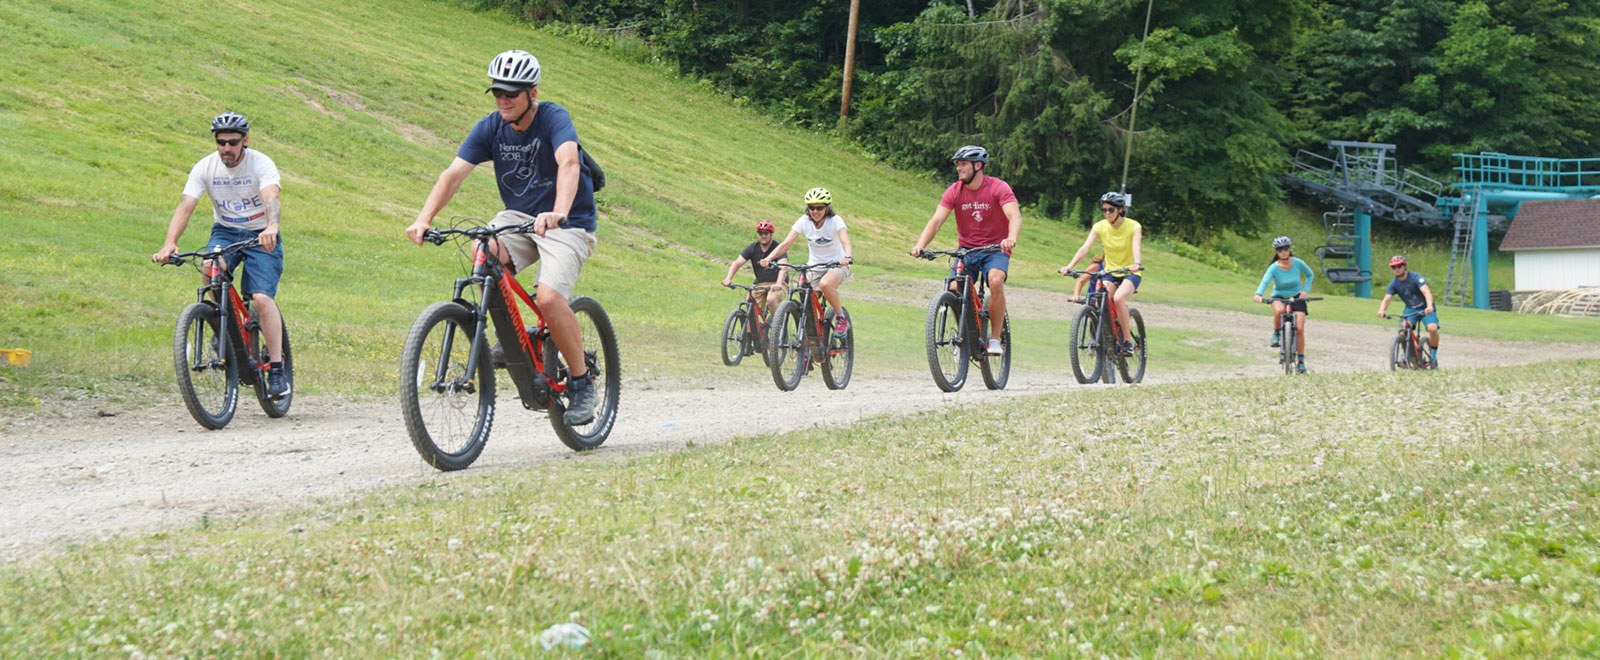 E-Bike Rentals at Holiday Valley!